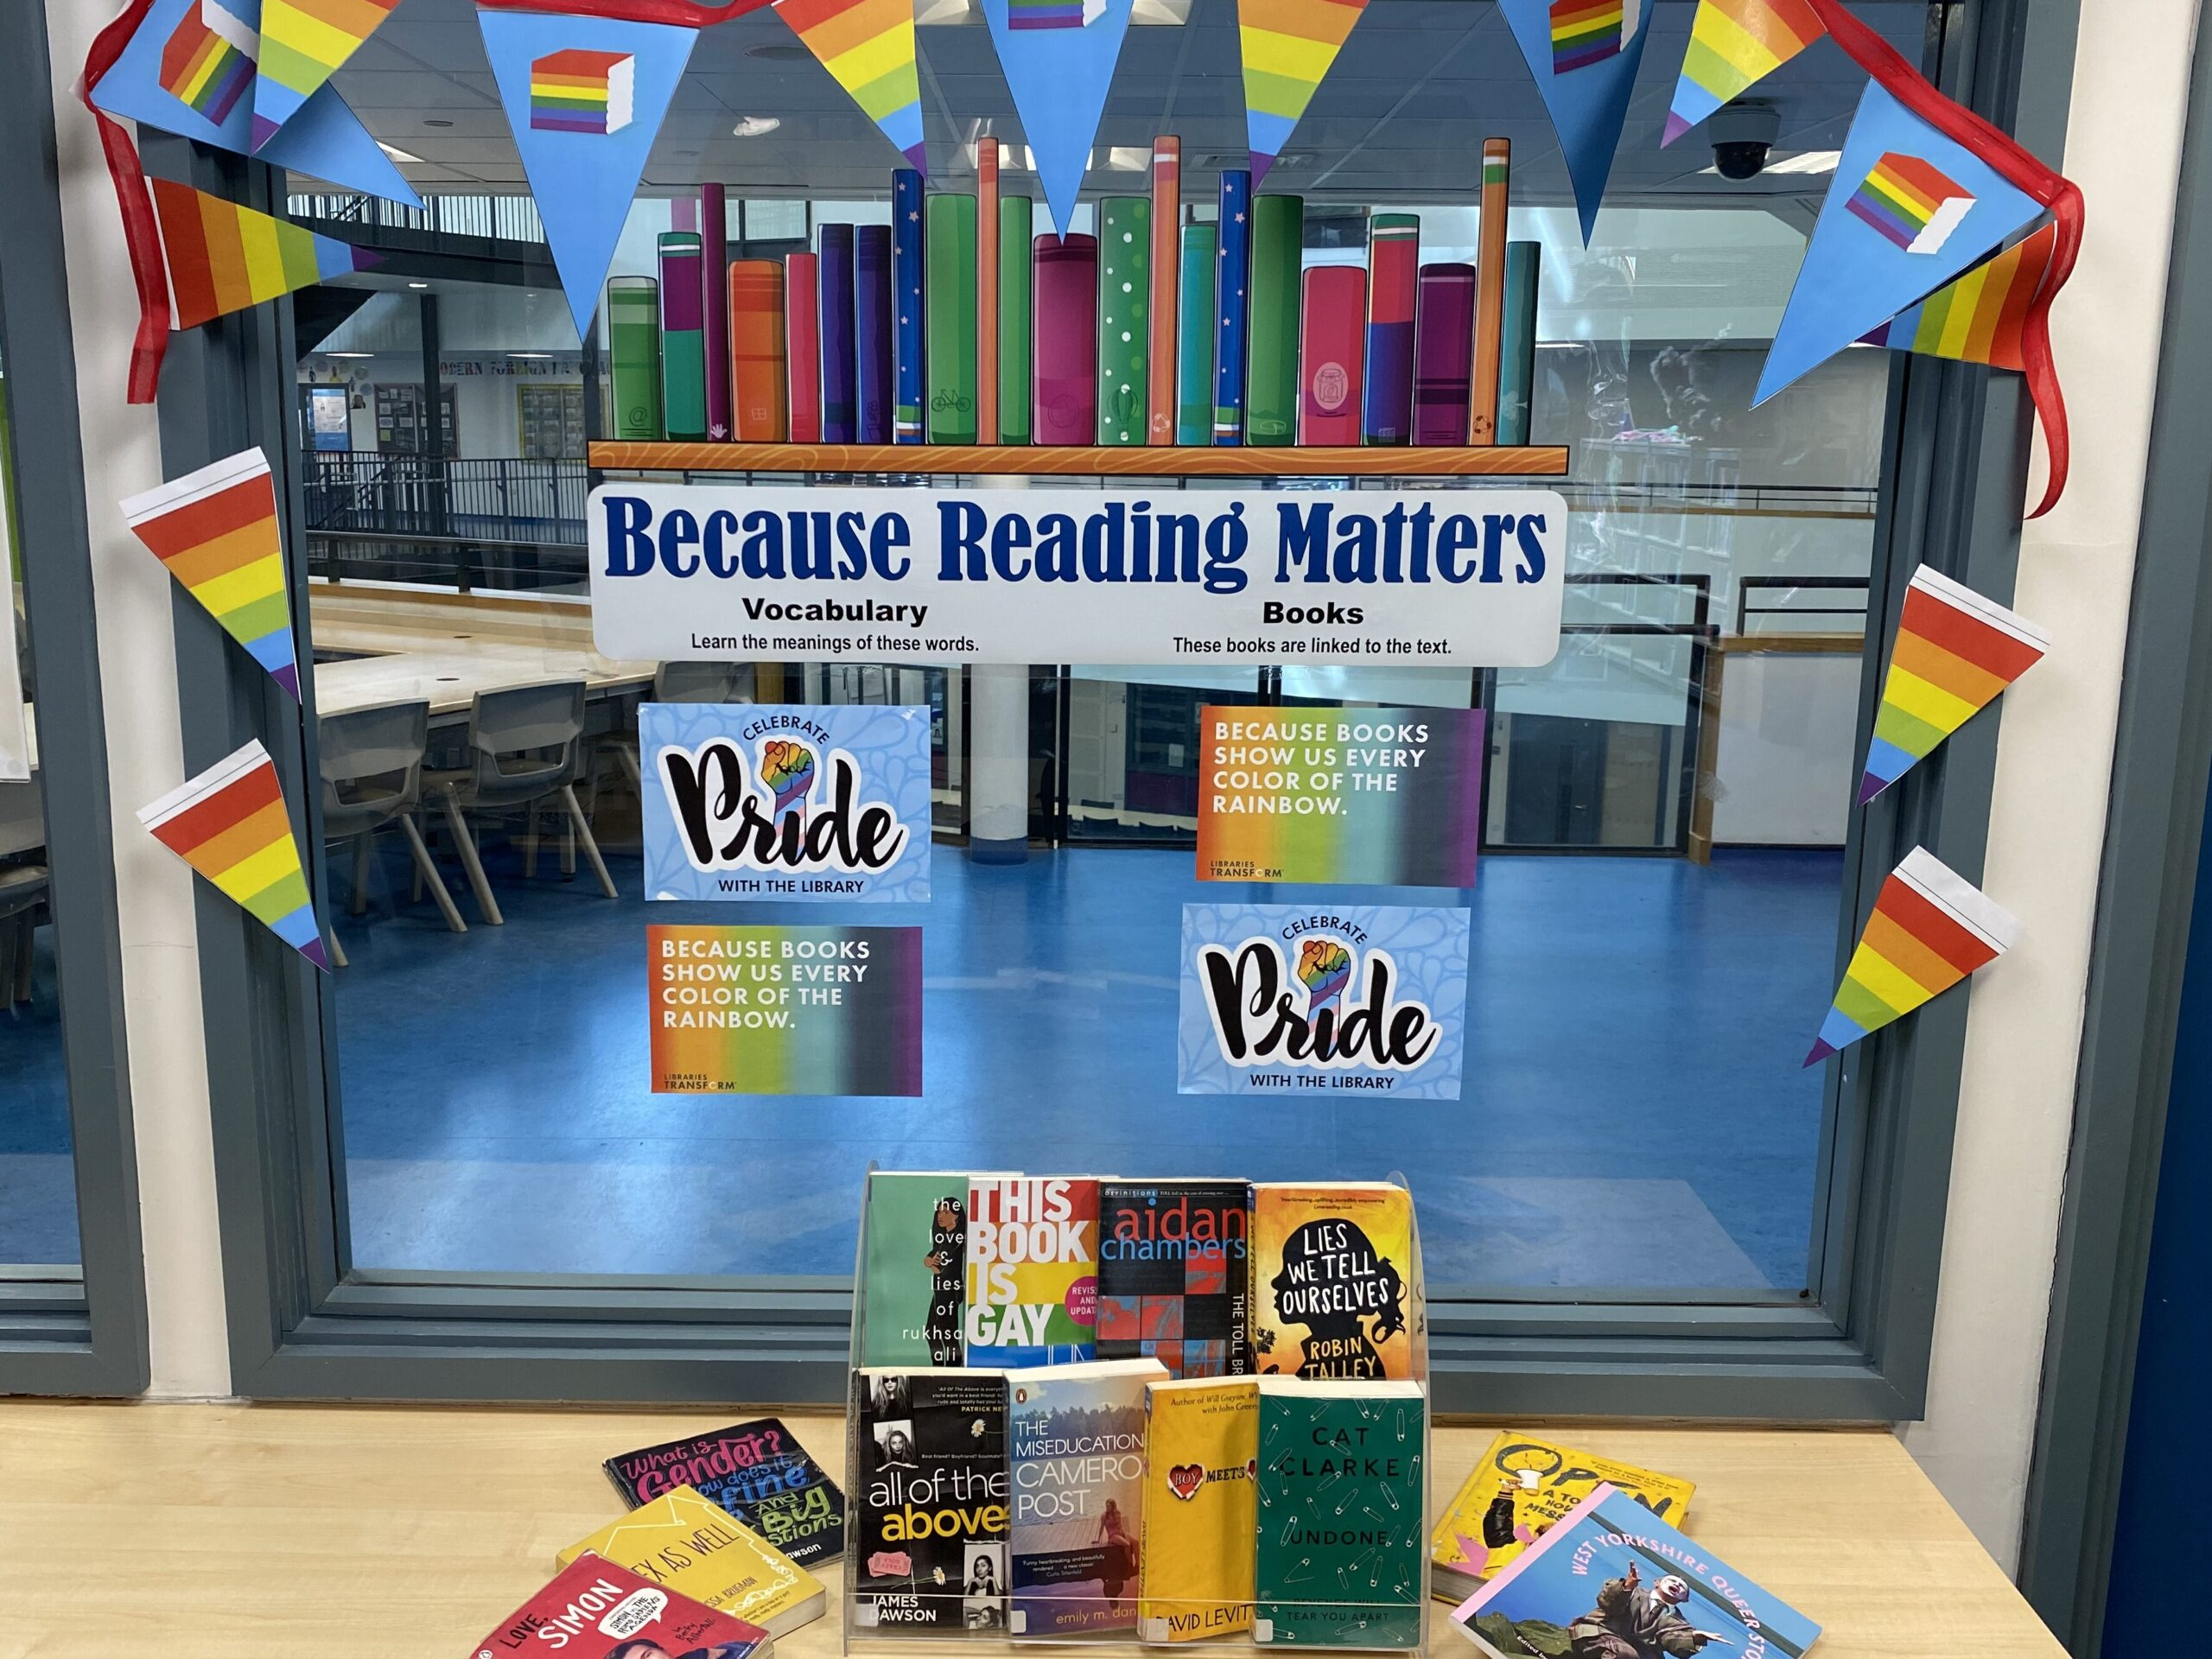 A display of books, pride posters and pride flags.